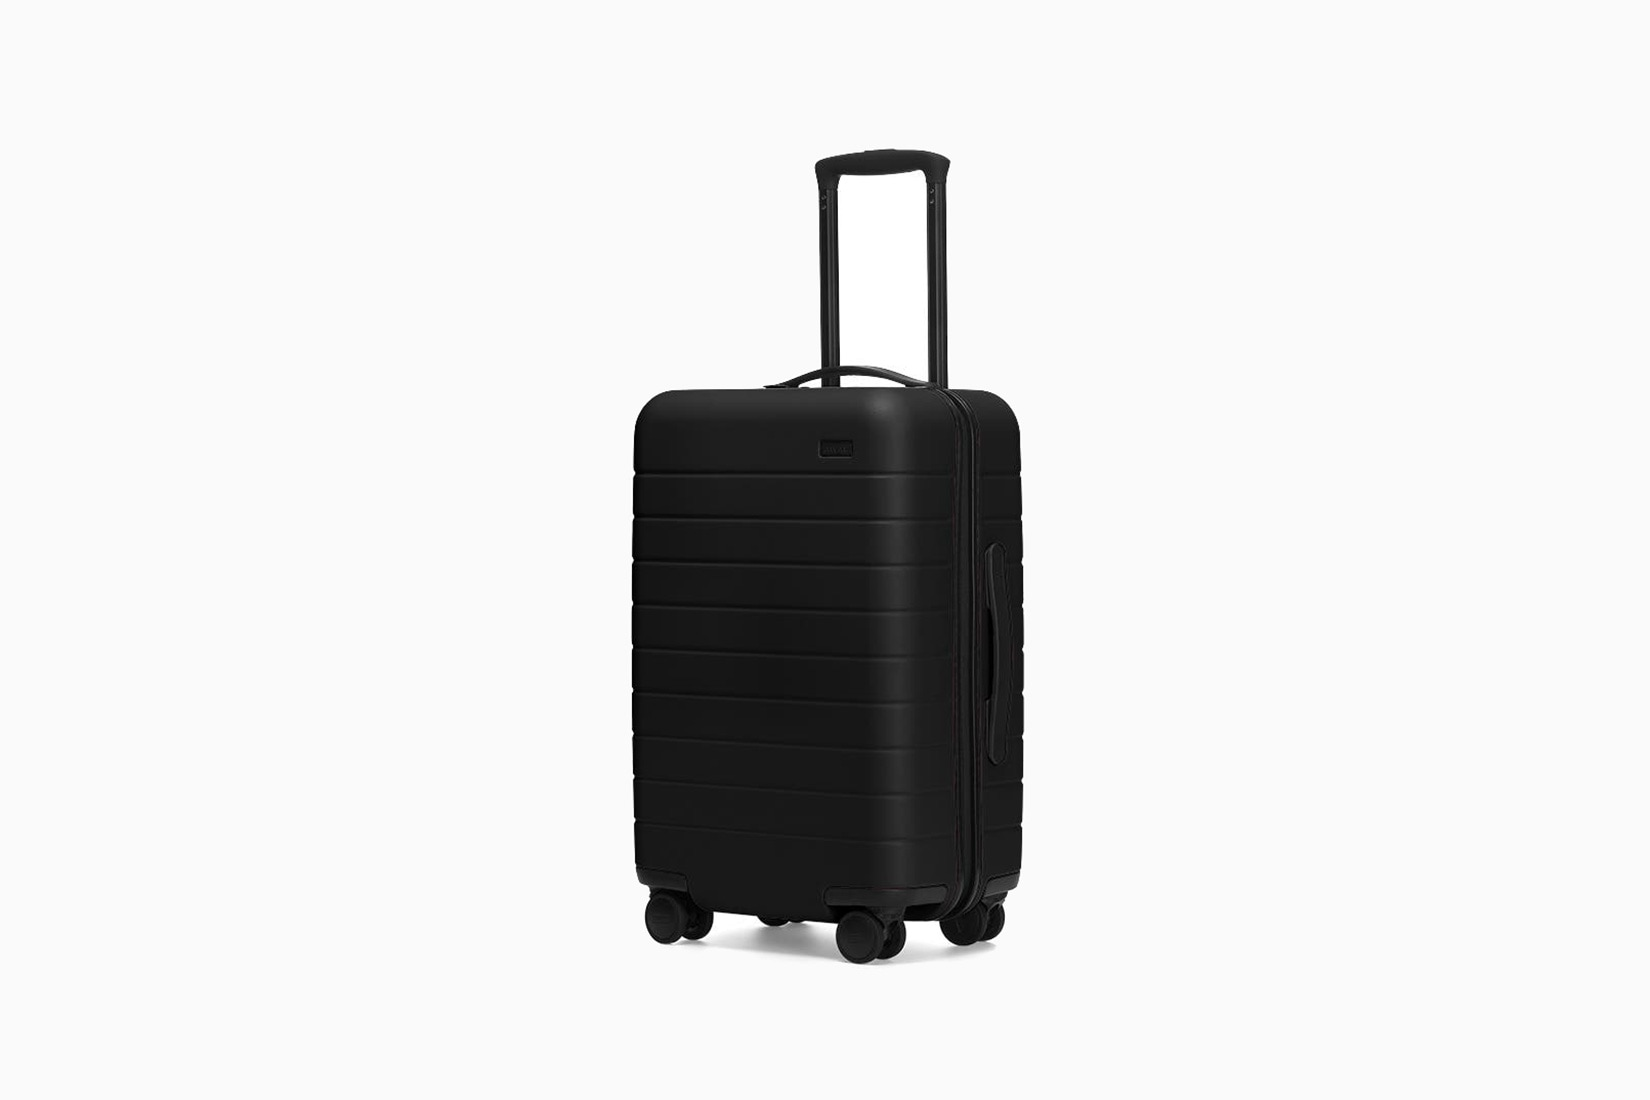 best carry-on luggage travel away - Luxe Digital